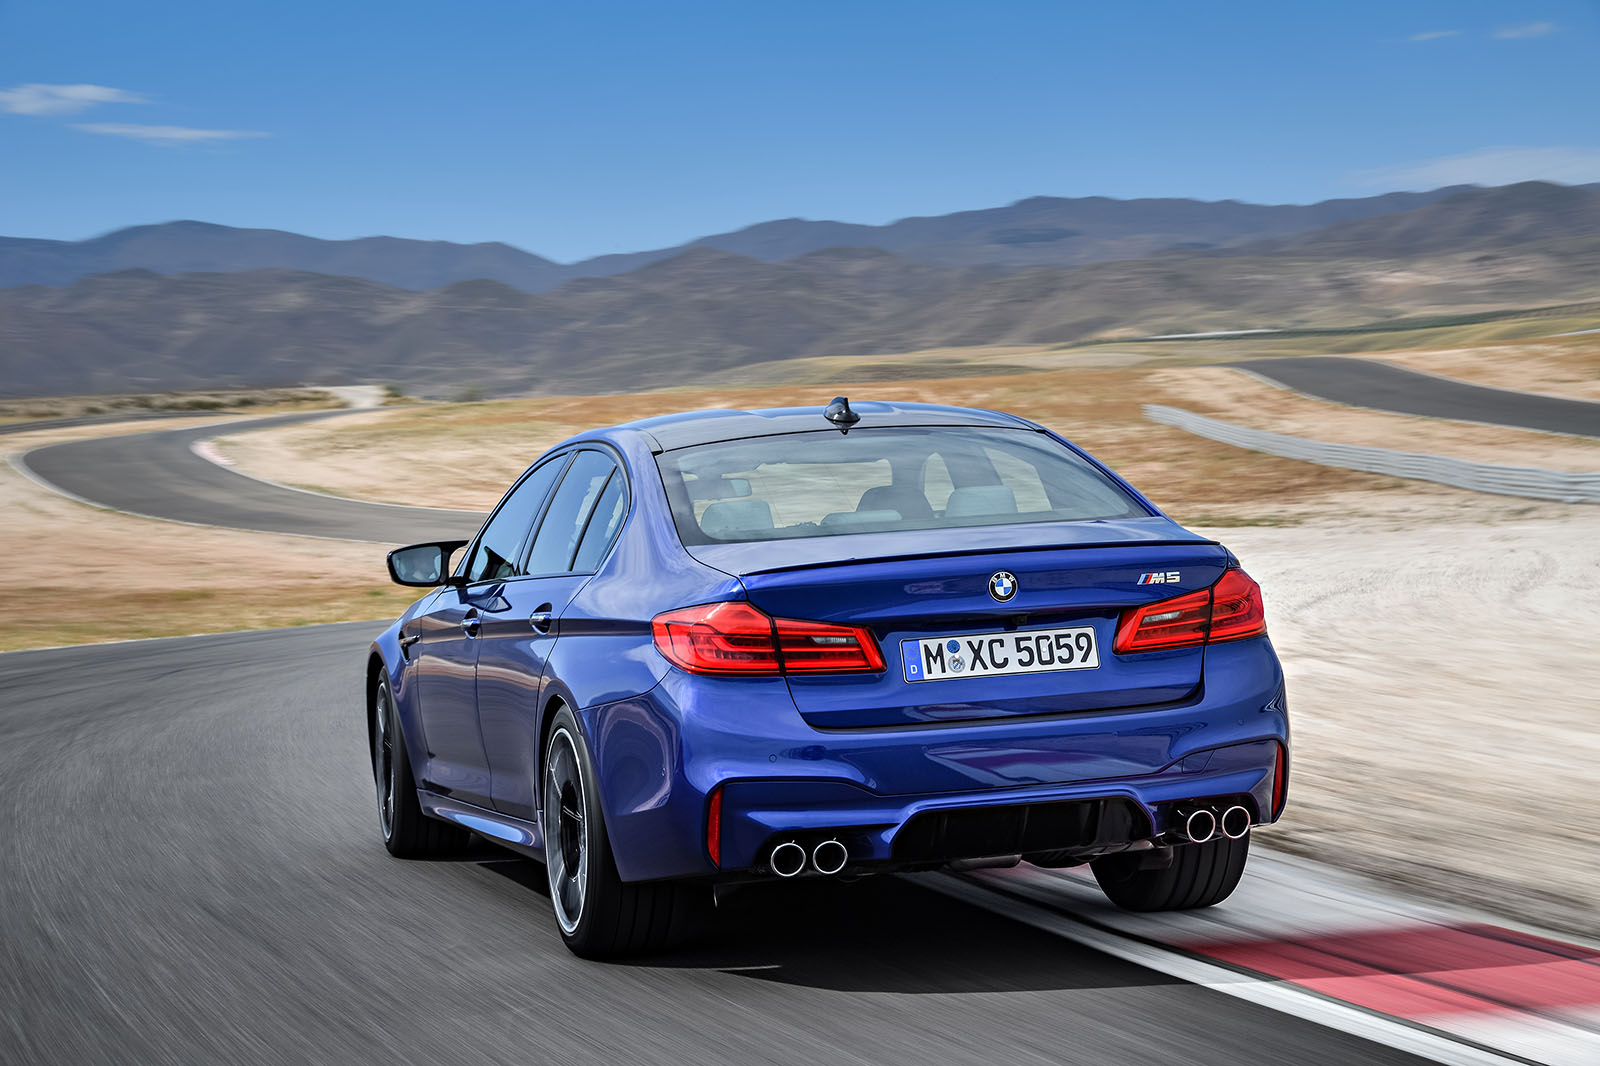 new bmw m5 revealed with 592bhp and four wheel drive autocar. Black Bedroom Furniture Sets. Home Design Ideas